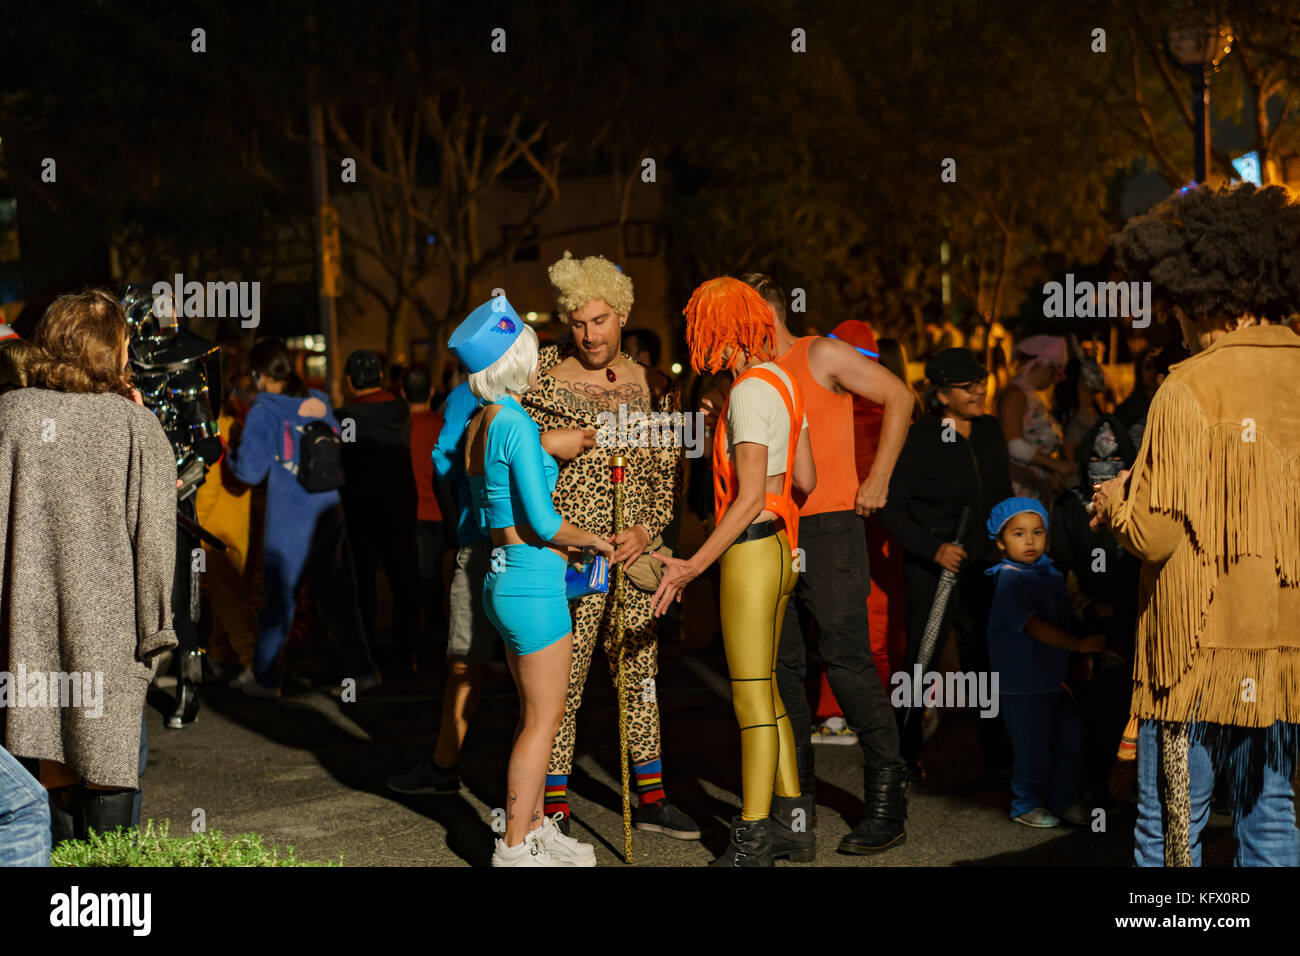 Los Angeles, Estados Unidos. 31 oct, 2017. Evento Especial - West Hollywood halloween carnaval en 31 oct, 2017 en Imagen De Stock